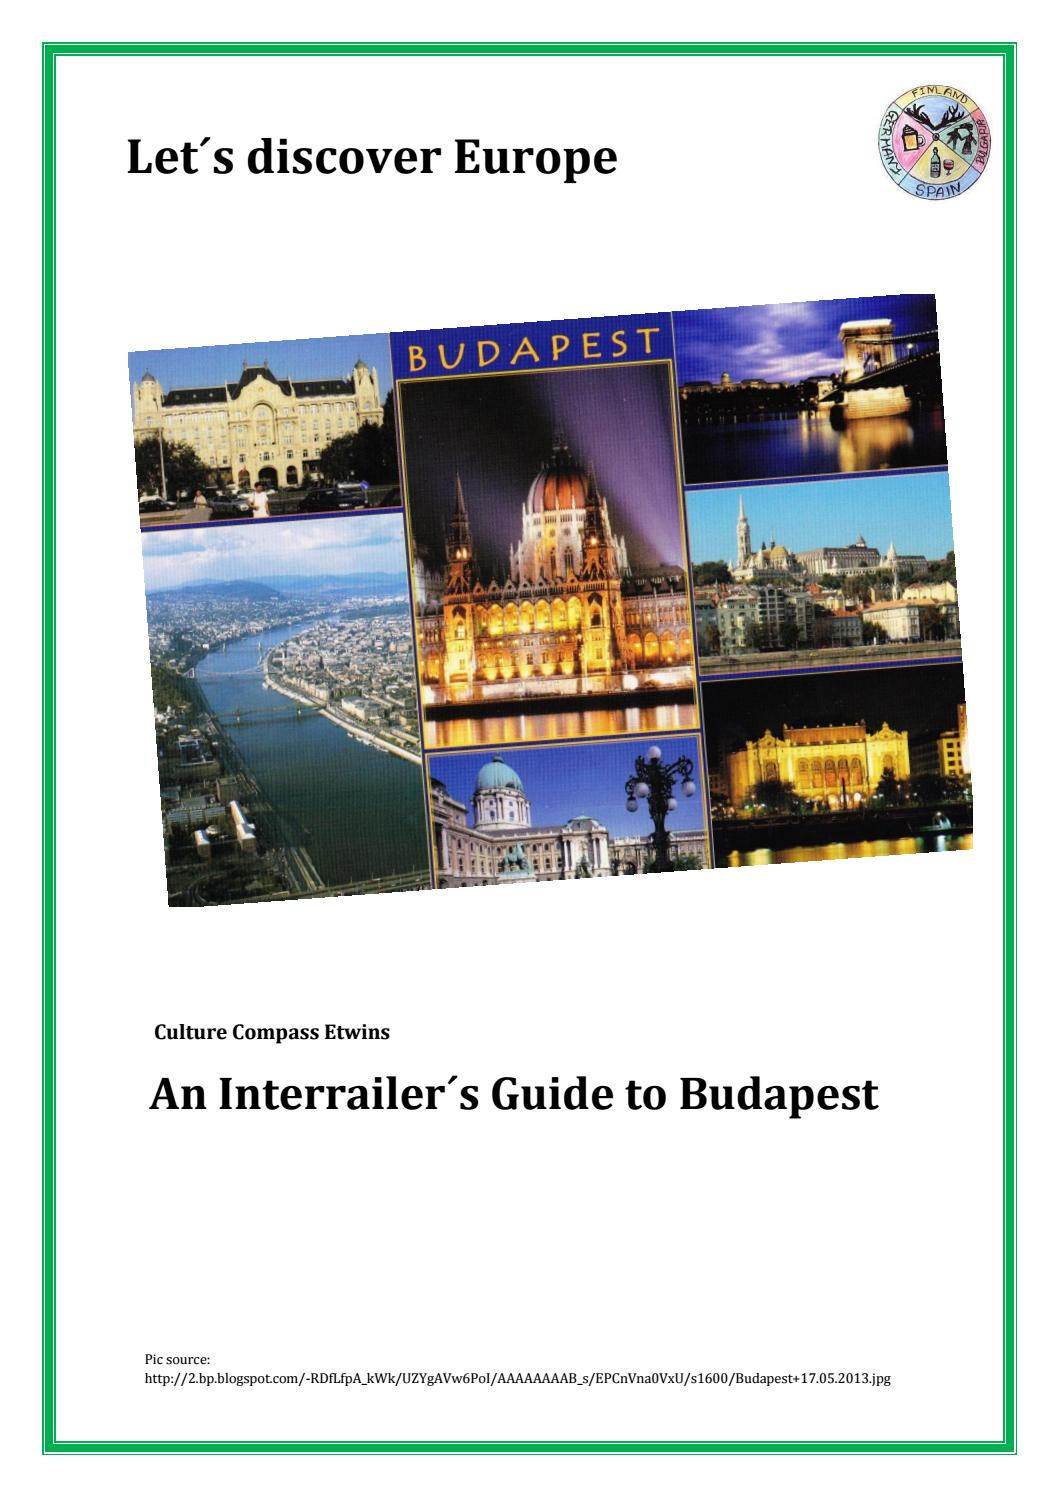 Budapest Guide For Interrailers By Learn Something New Every Day